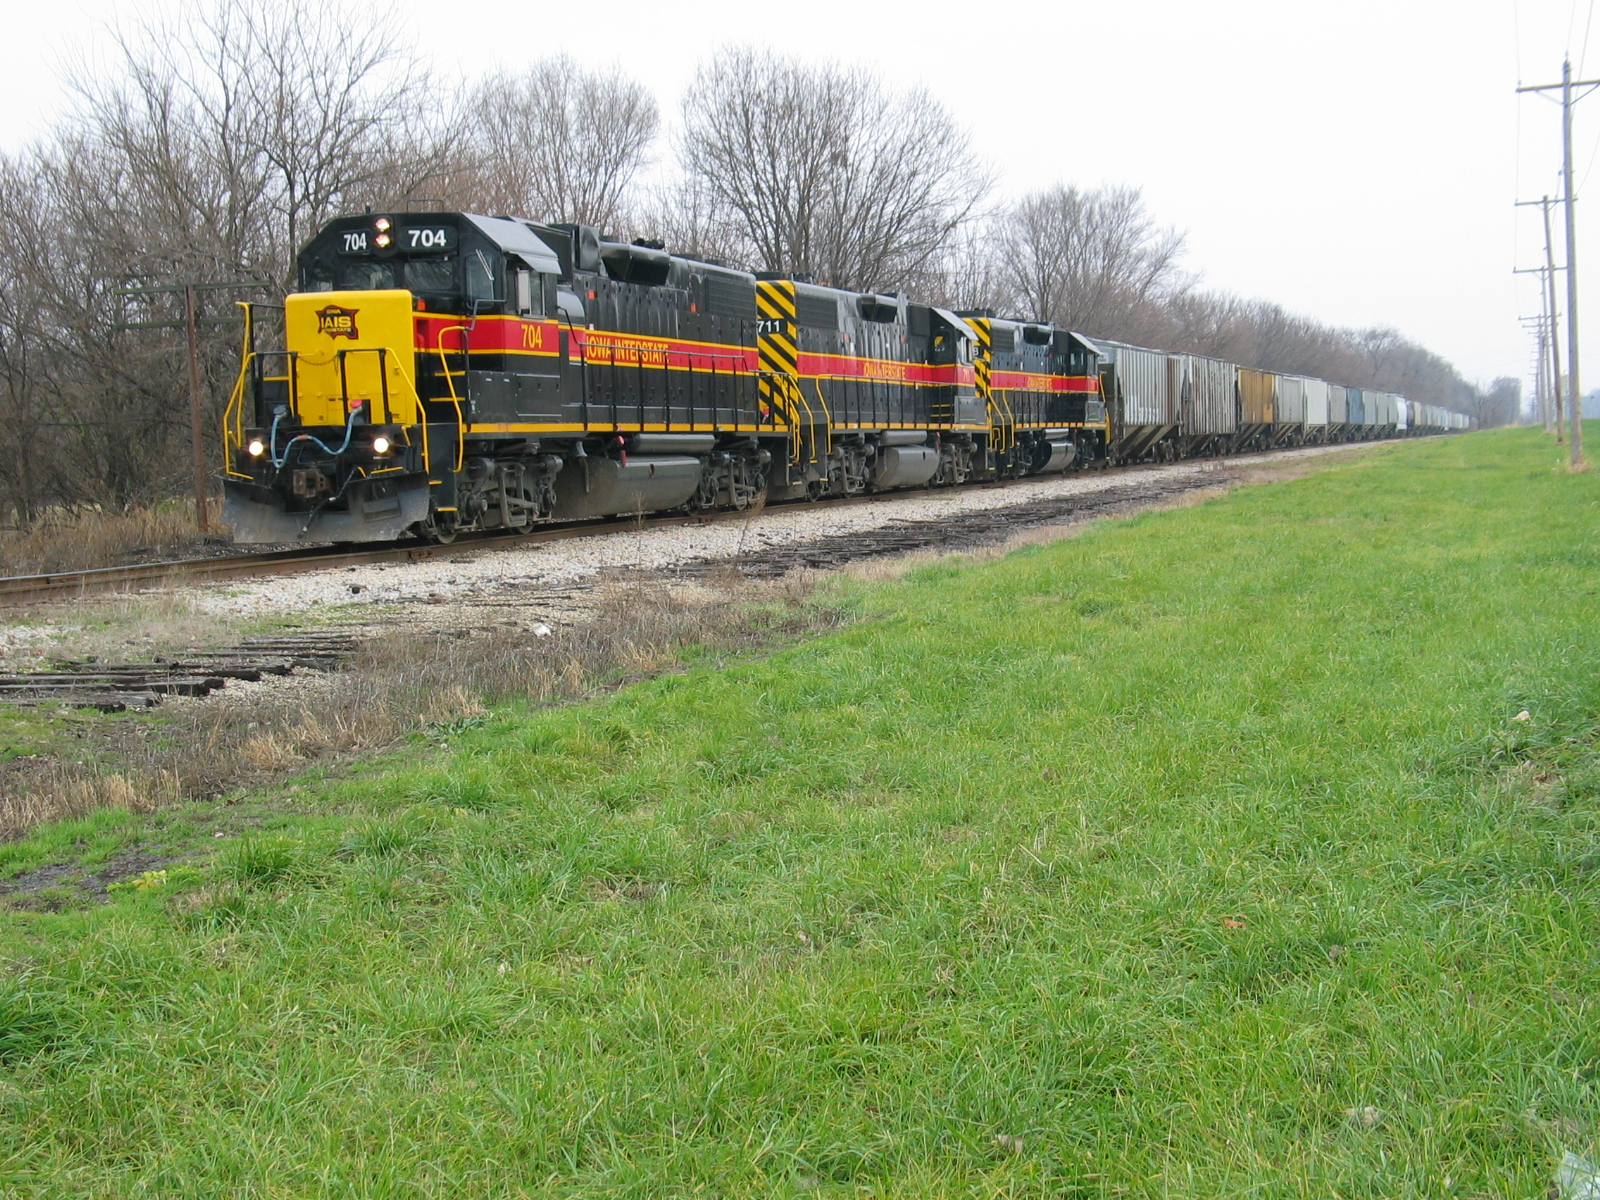 Northbound Peoria Rocket, north of Peoria at the old RI location known as Sankoty.  The remains of the old siding are visible in the foreground.  Nov. 17, 2006.